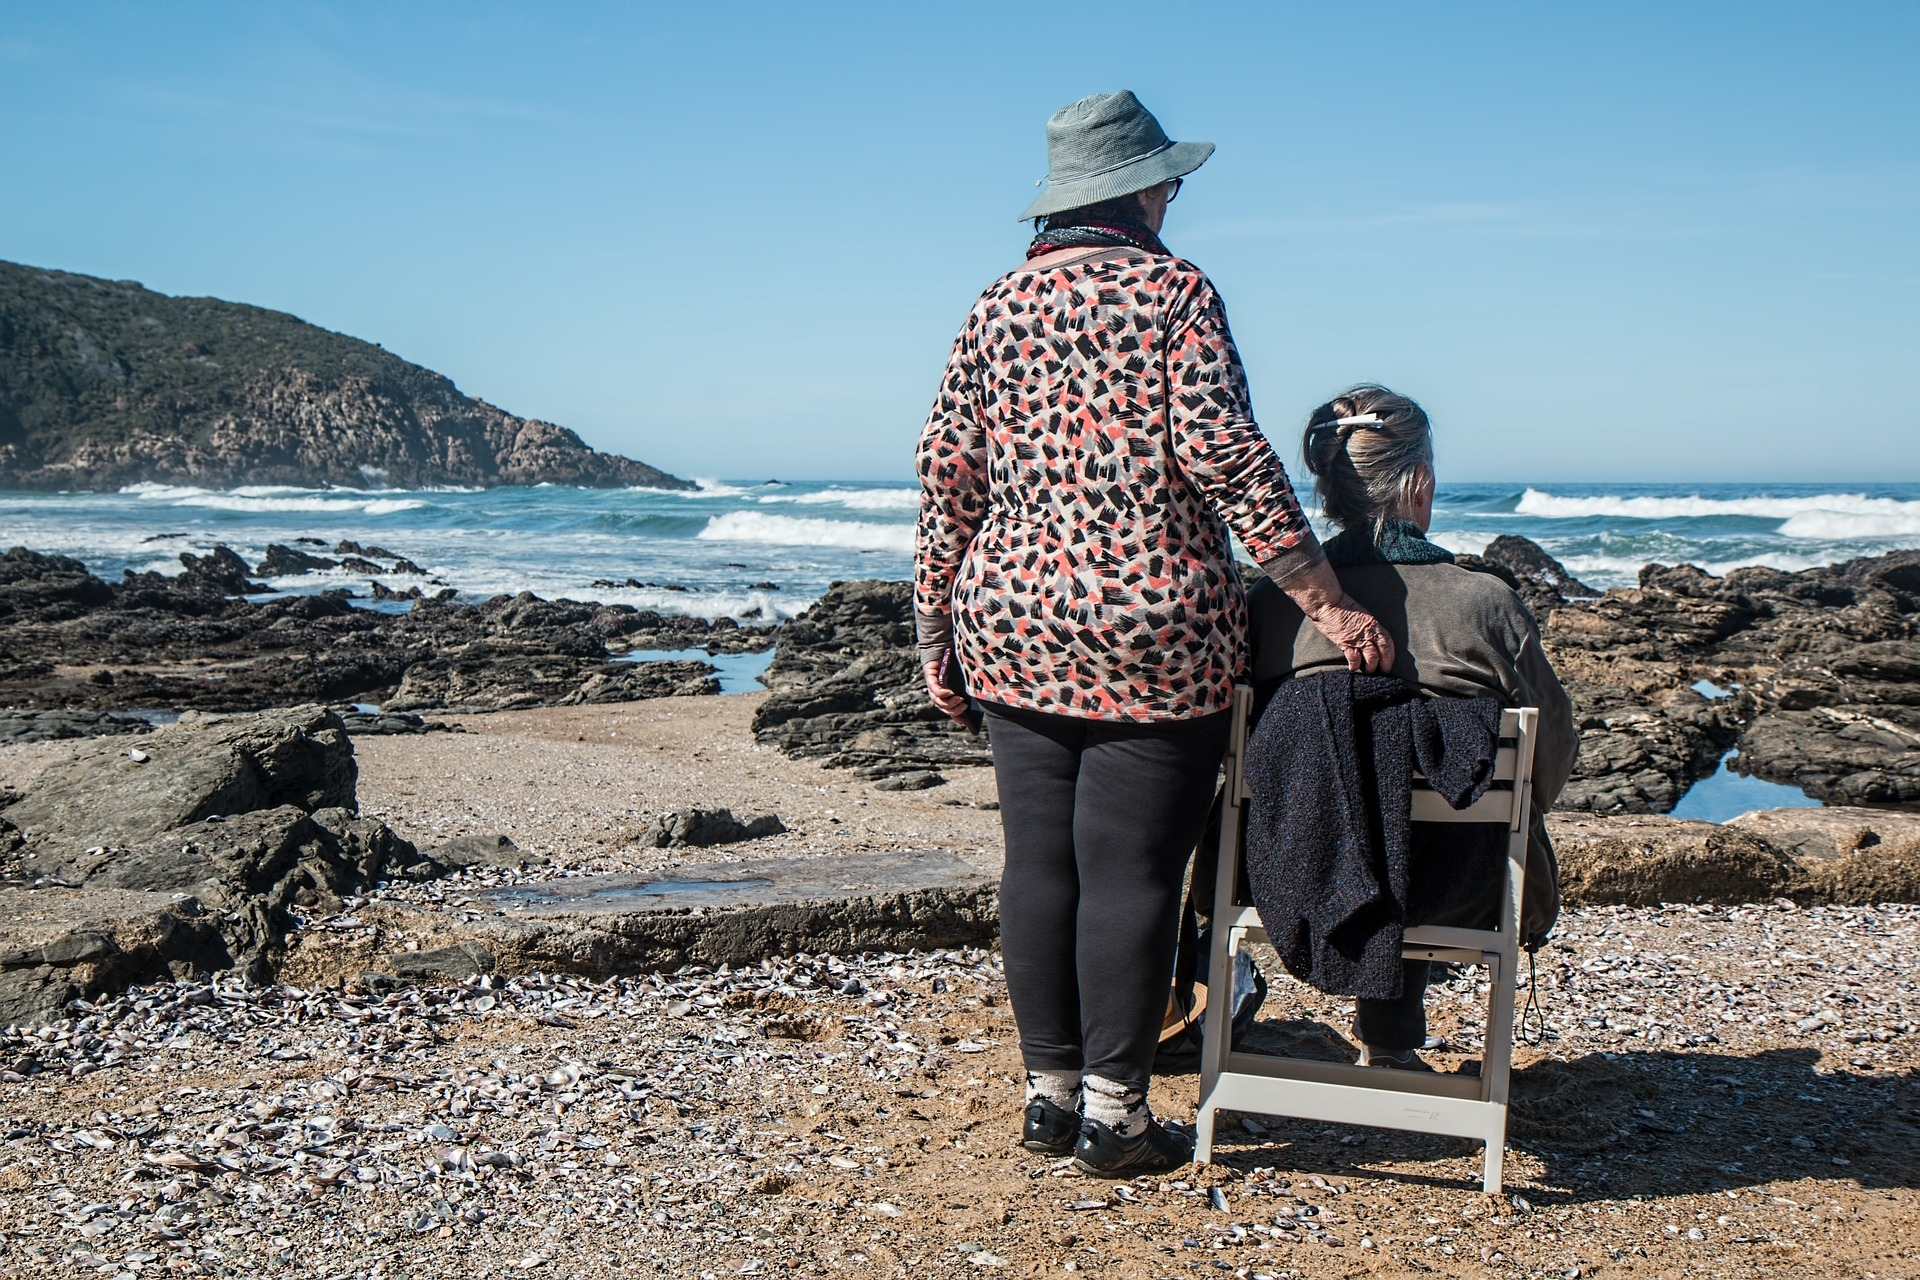 Lady sitting down on wooden chair looking out to sea, with other lady placing her right hand on the chair